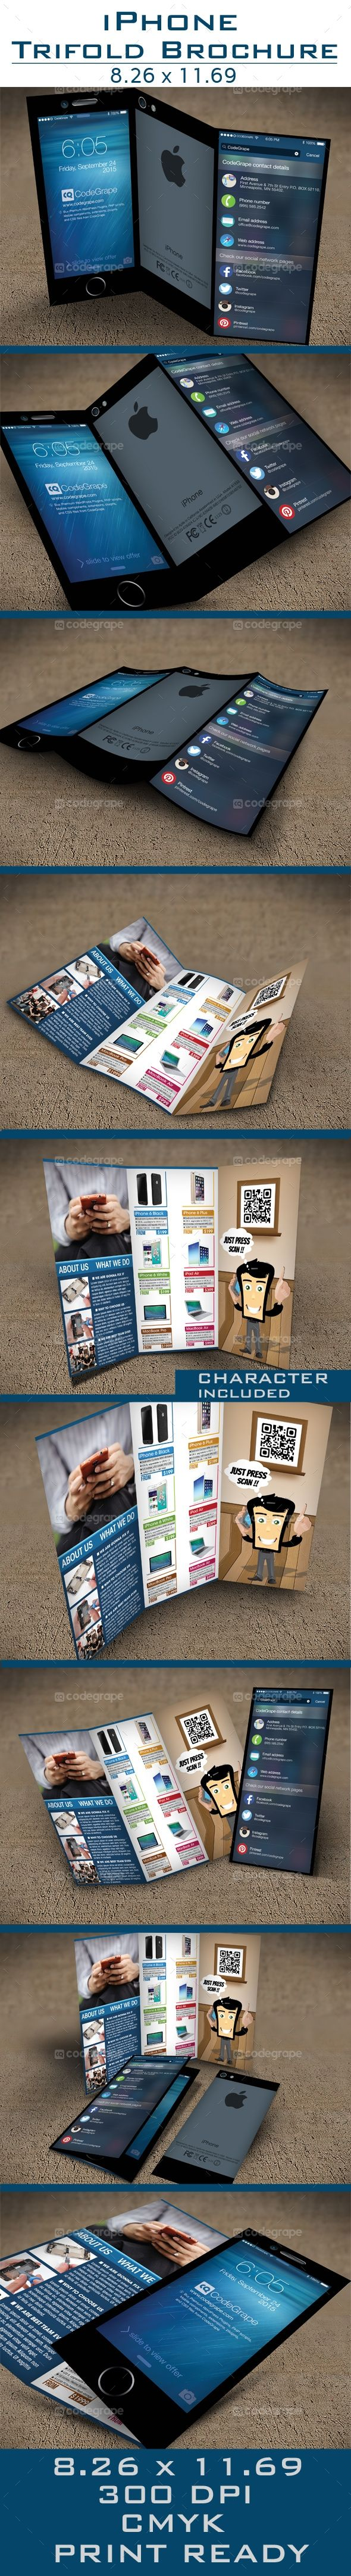 iPhone Tri-Fold Brochure - http://www.codegrape.com/item/iphone-tri-fold-brochure/5388